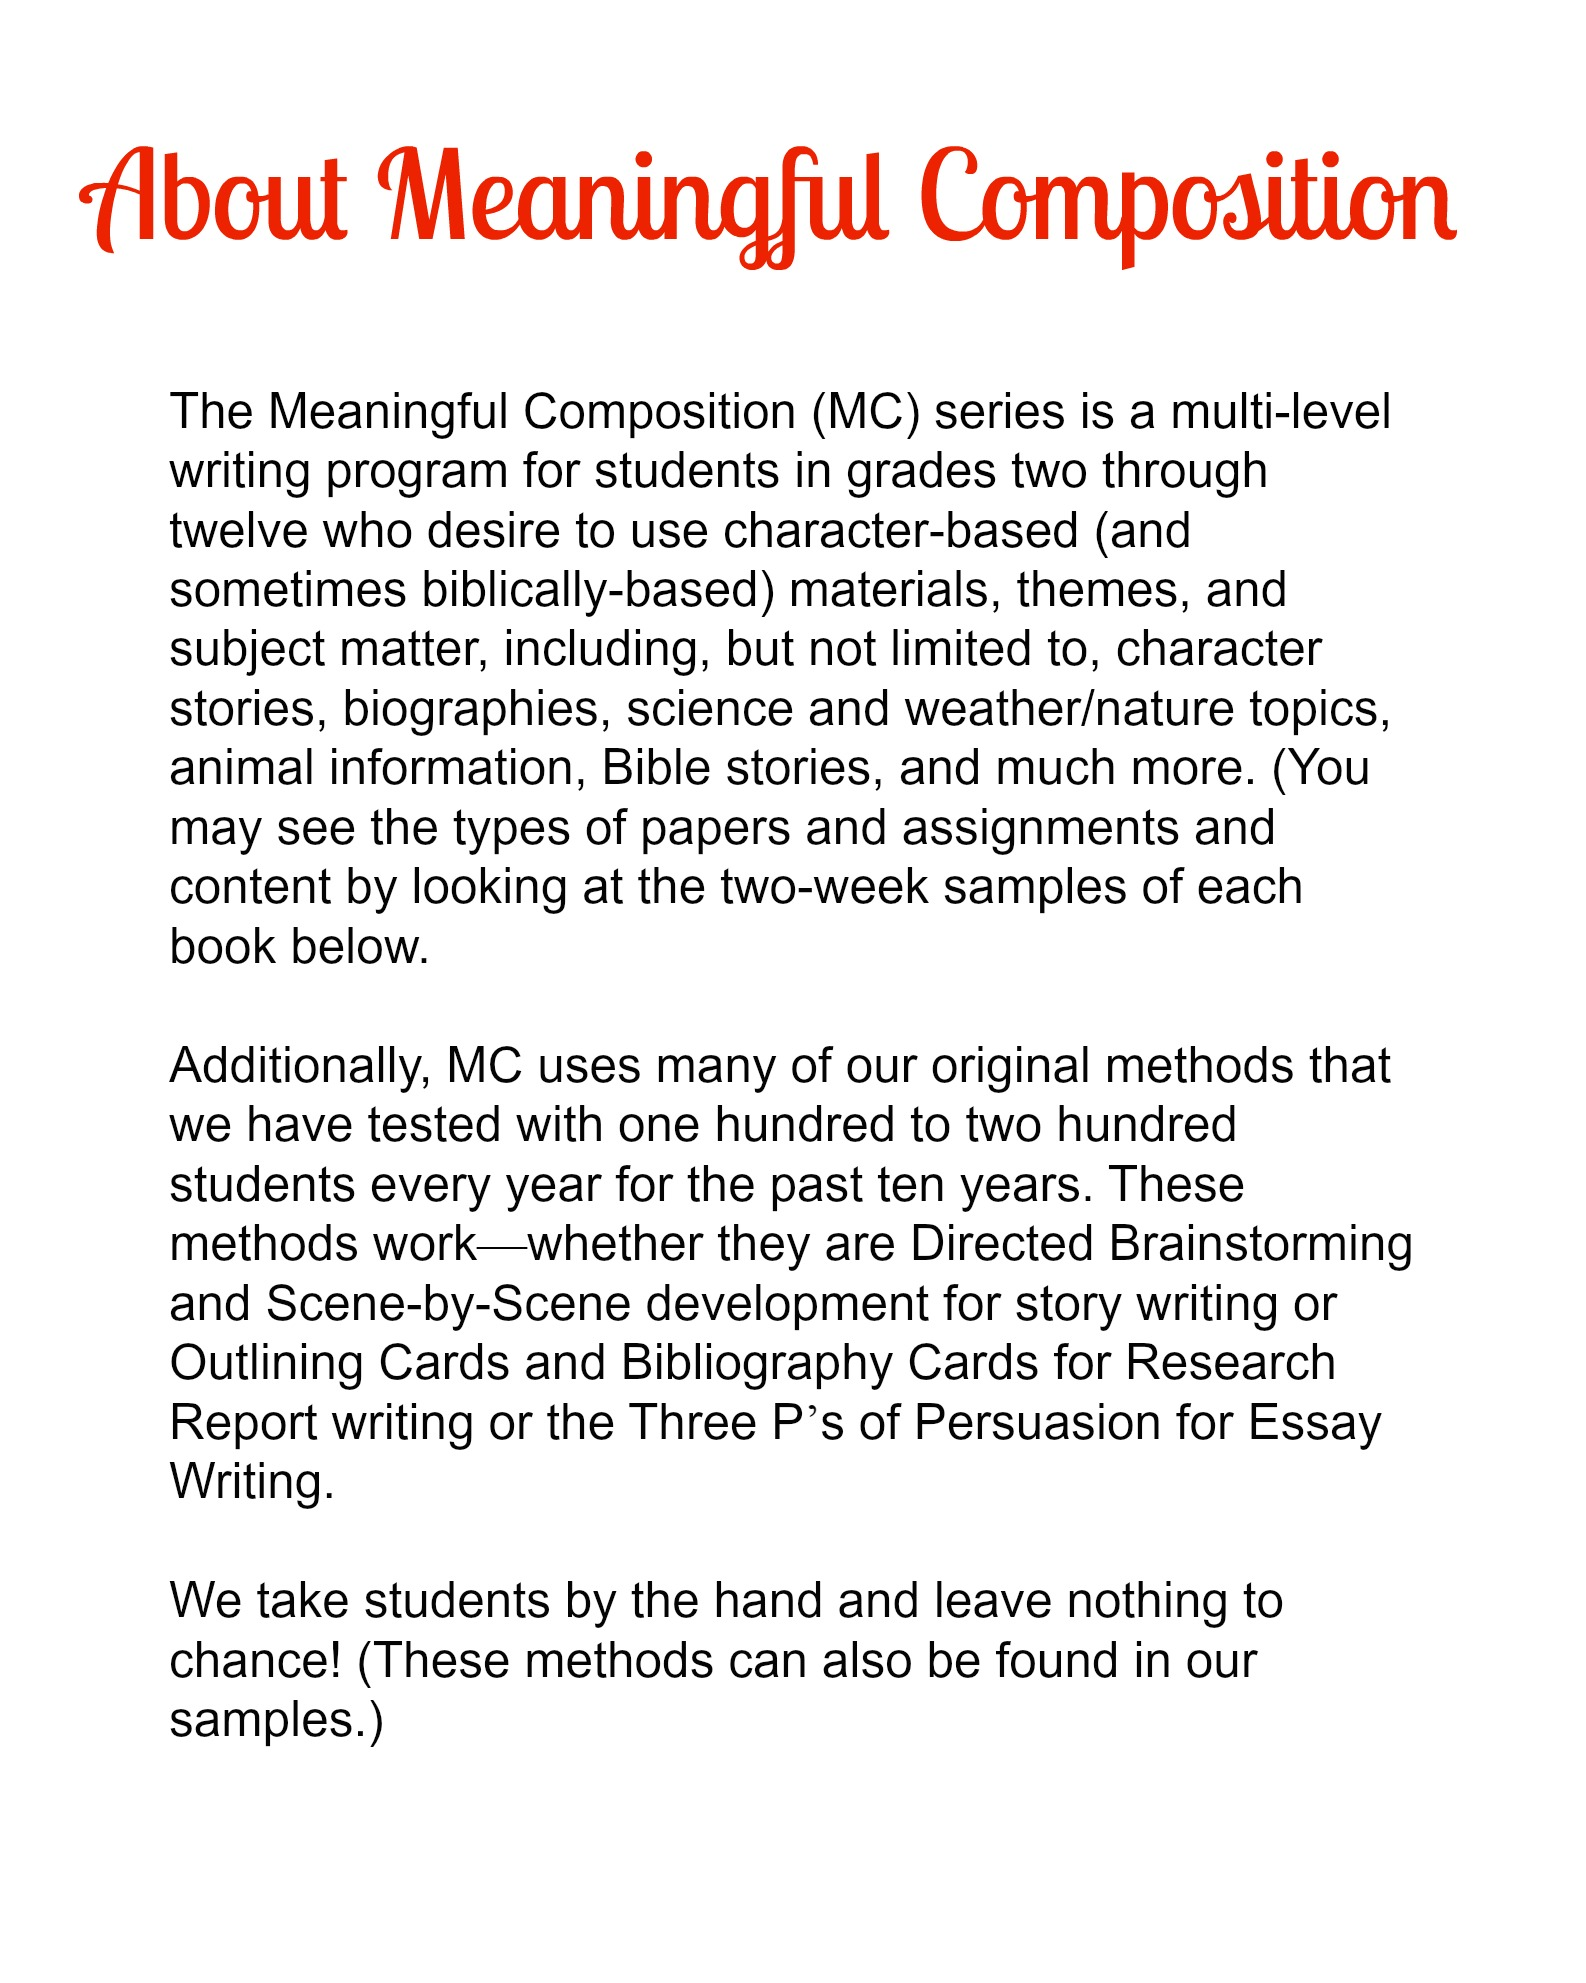 002 Expository Essay Examples Of Introductions Creative Writing Course Paragraph Persuasive On Bullying About Meaningful Compos Cyber How To Prevent Five Example Beautiful Cyberbullying Introduction Body Conclusion Argumentative Outline Full